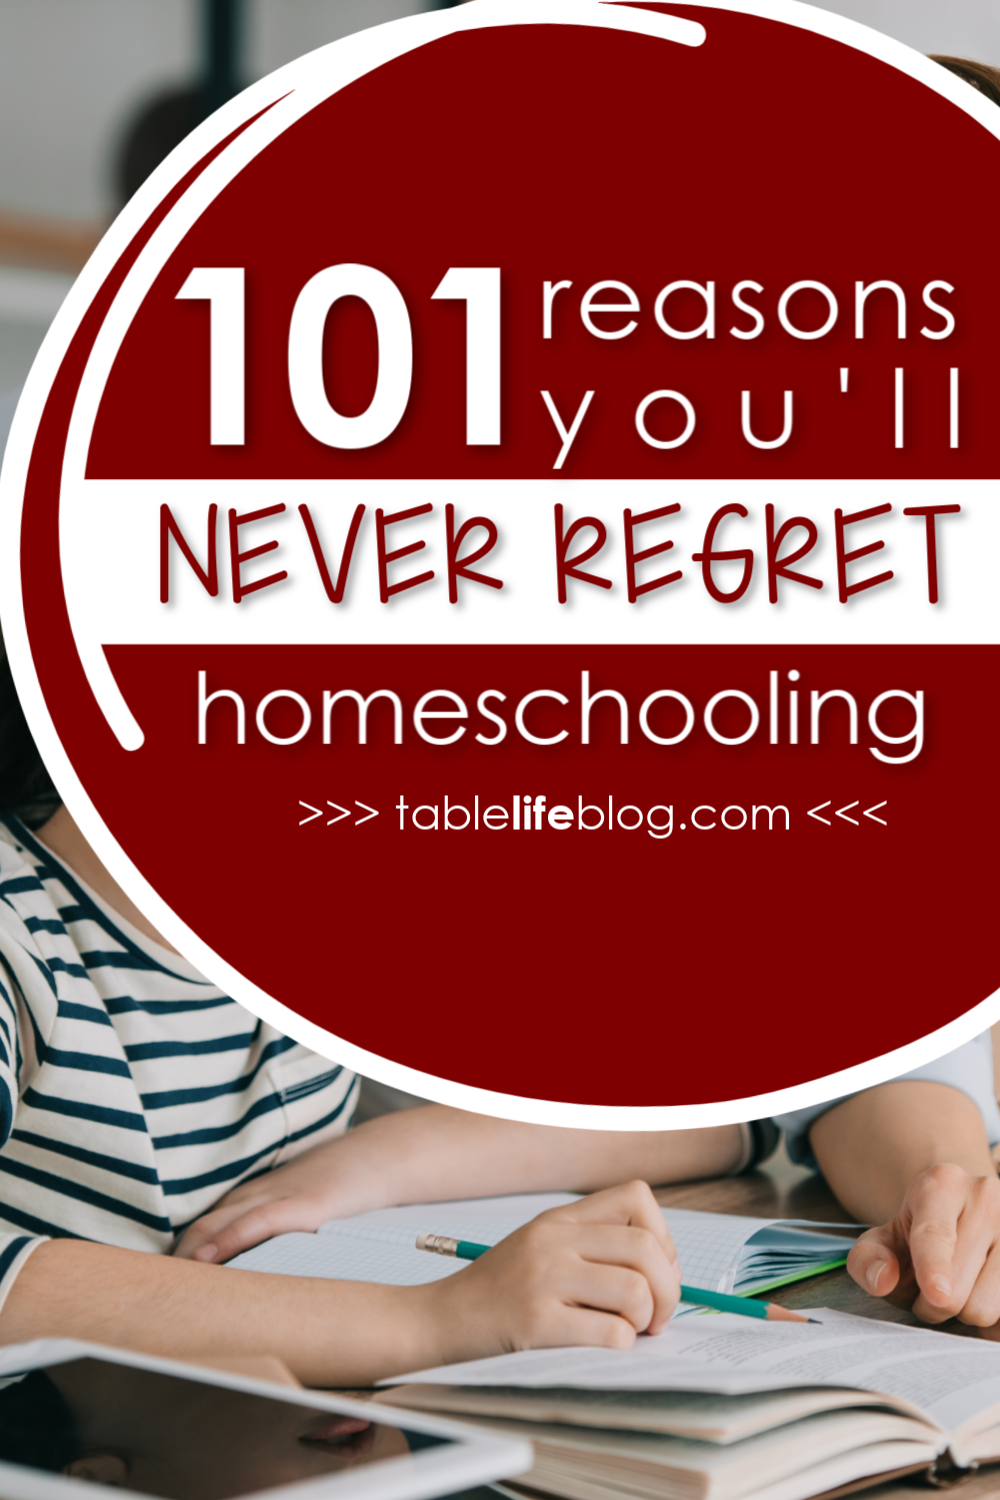 Homeschool life isn't easy and it definitely goes against the societal norm. Even so, there are lots of reasons you'll never regret homeschooling, even if everyone says you're crazy for doing it.